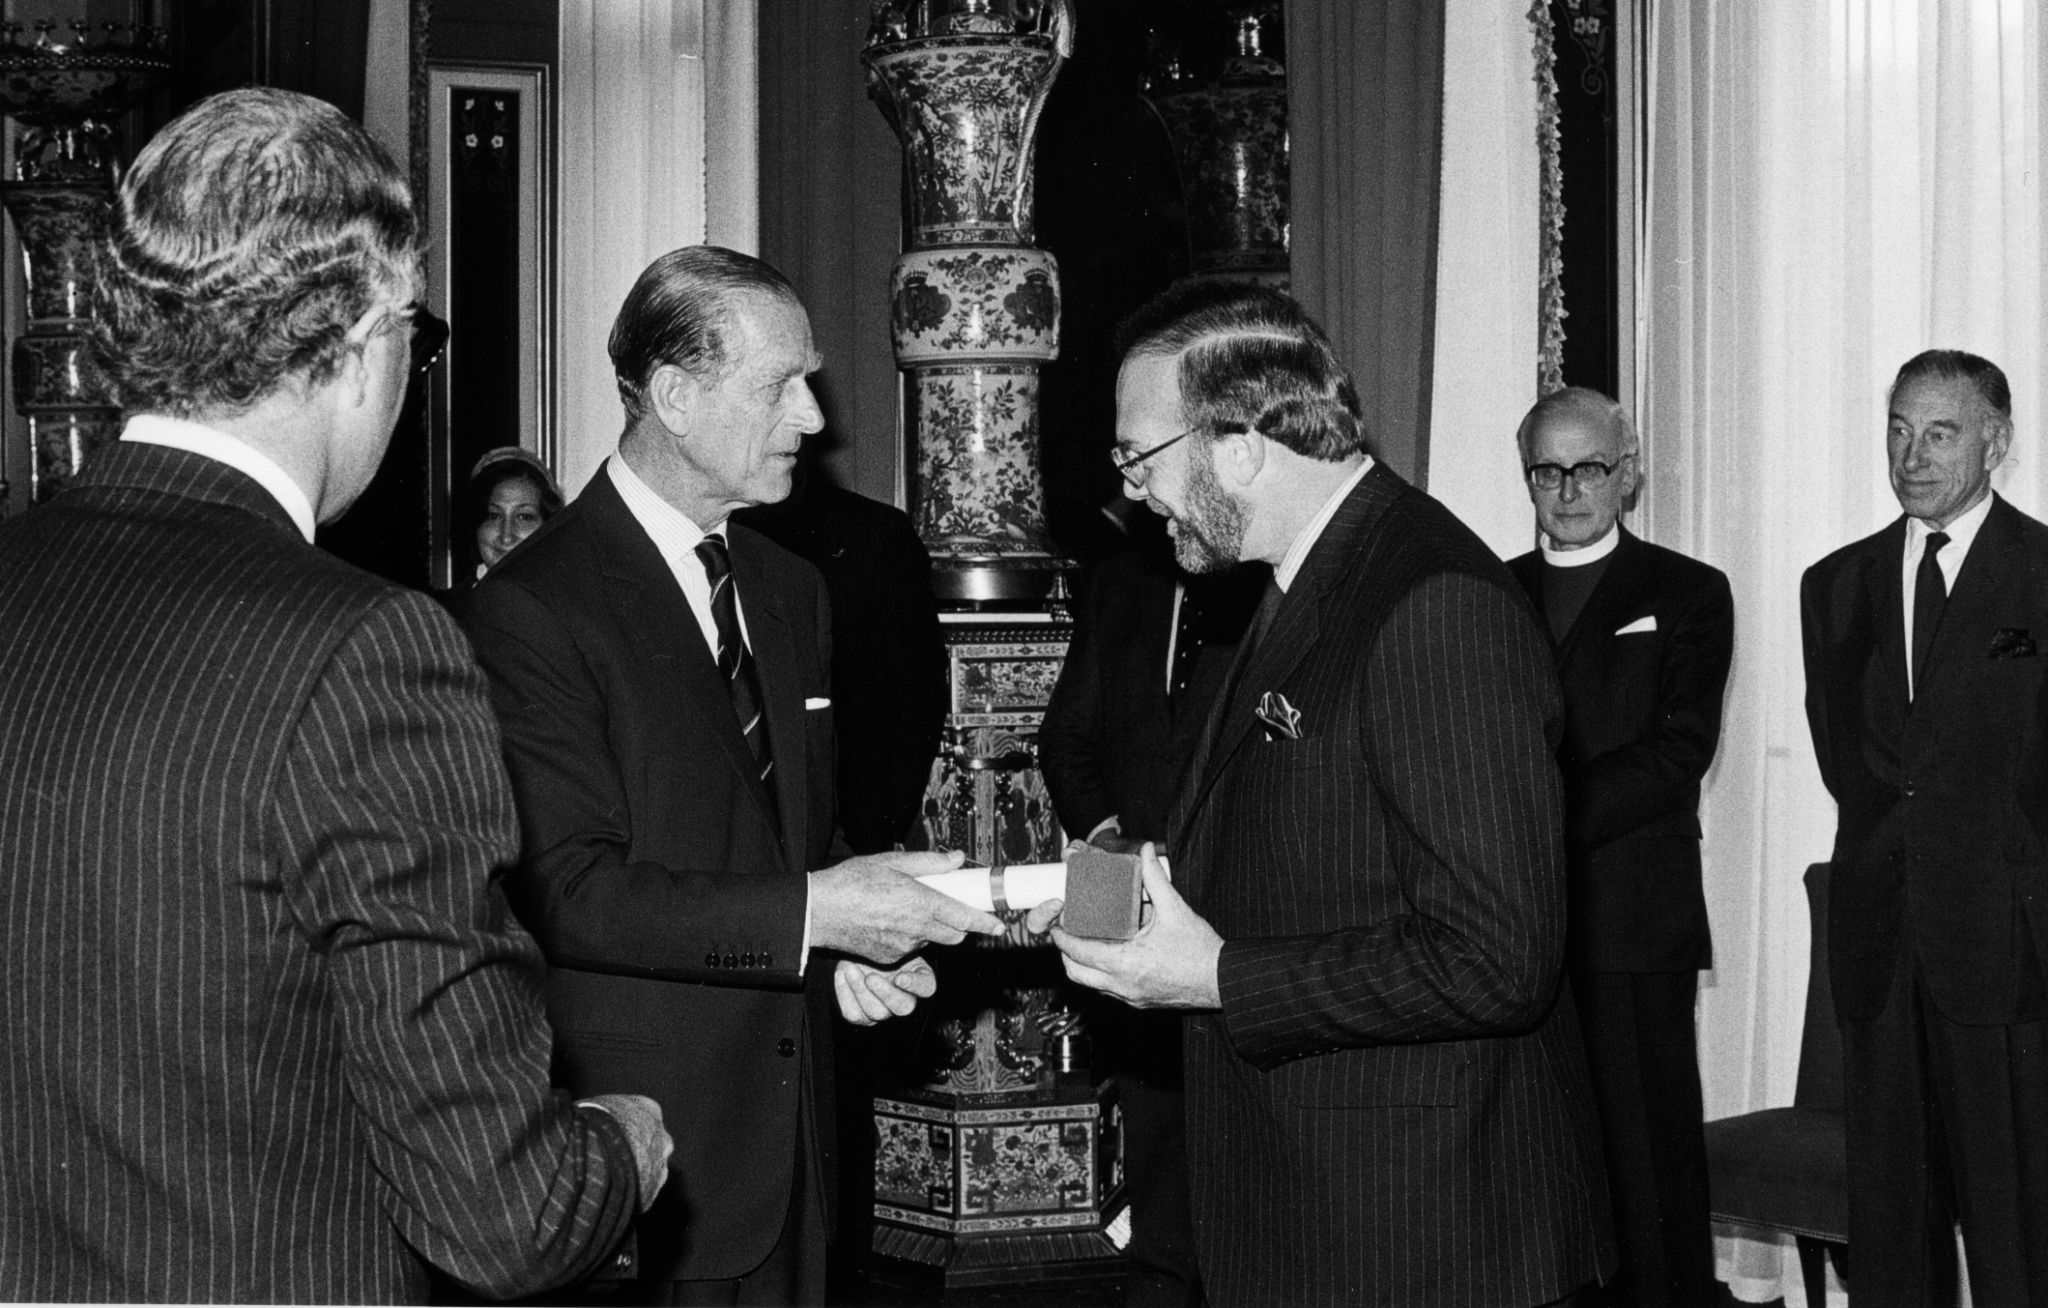 Michael Bourdeaux 1984 Laureate of Templeton Prize accepting award from Prince Philip, Duke of Edinburgh at palace